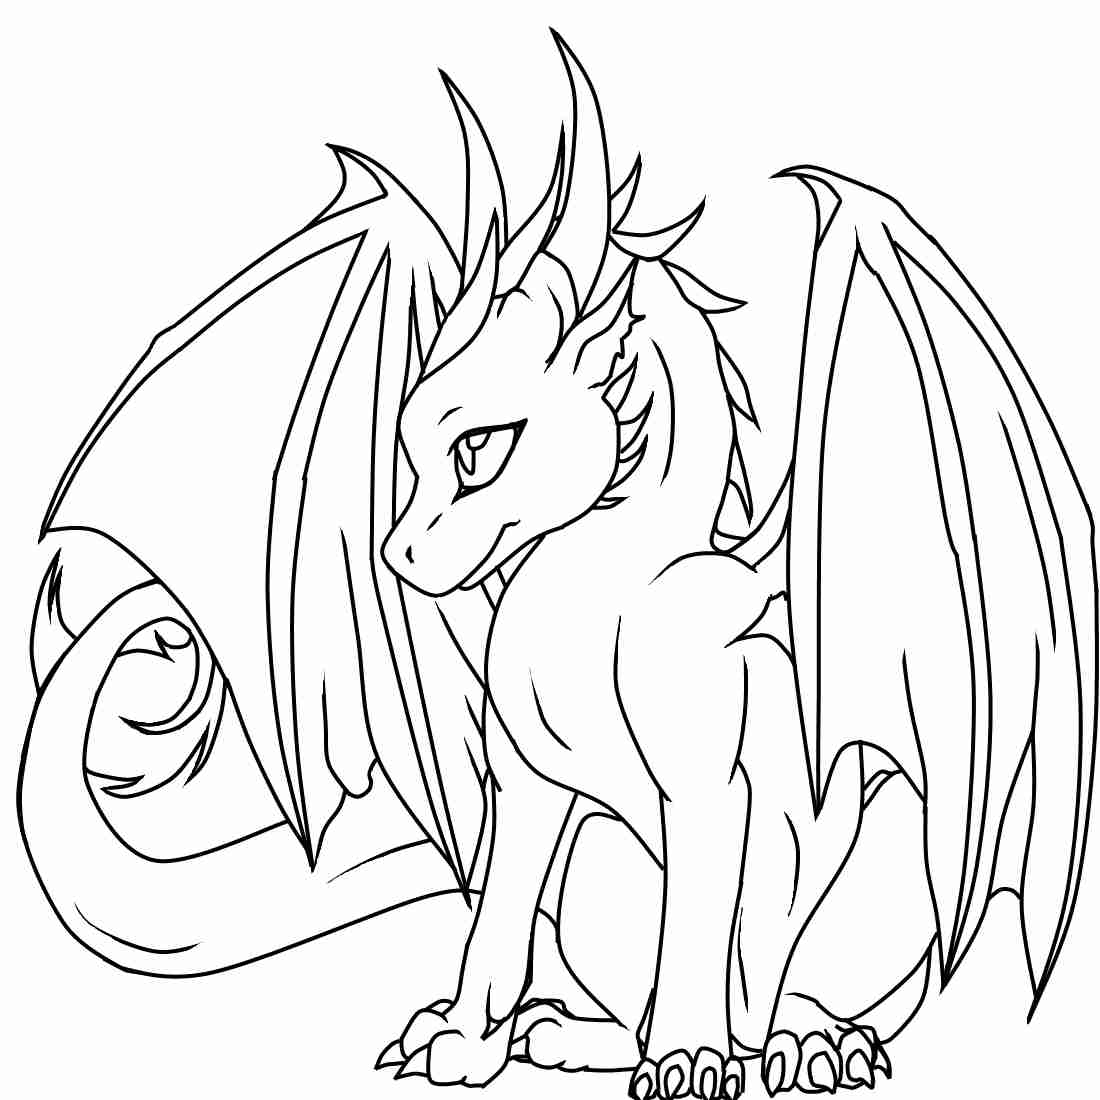 1100x1100 Simple Cartoon Dragon Coloring Pages Has On Endear Olegratiy